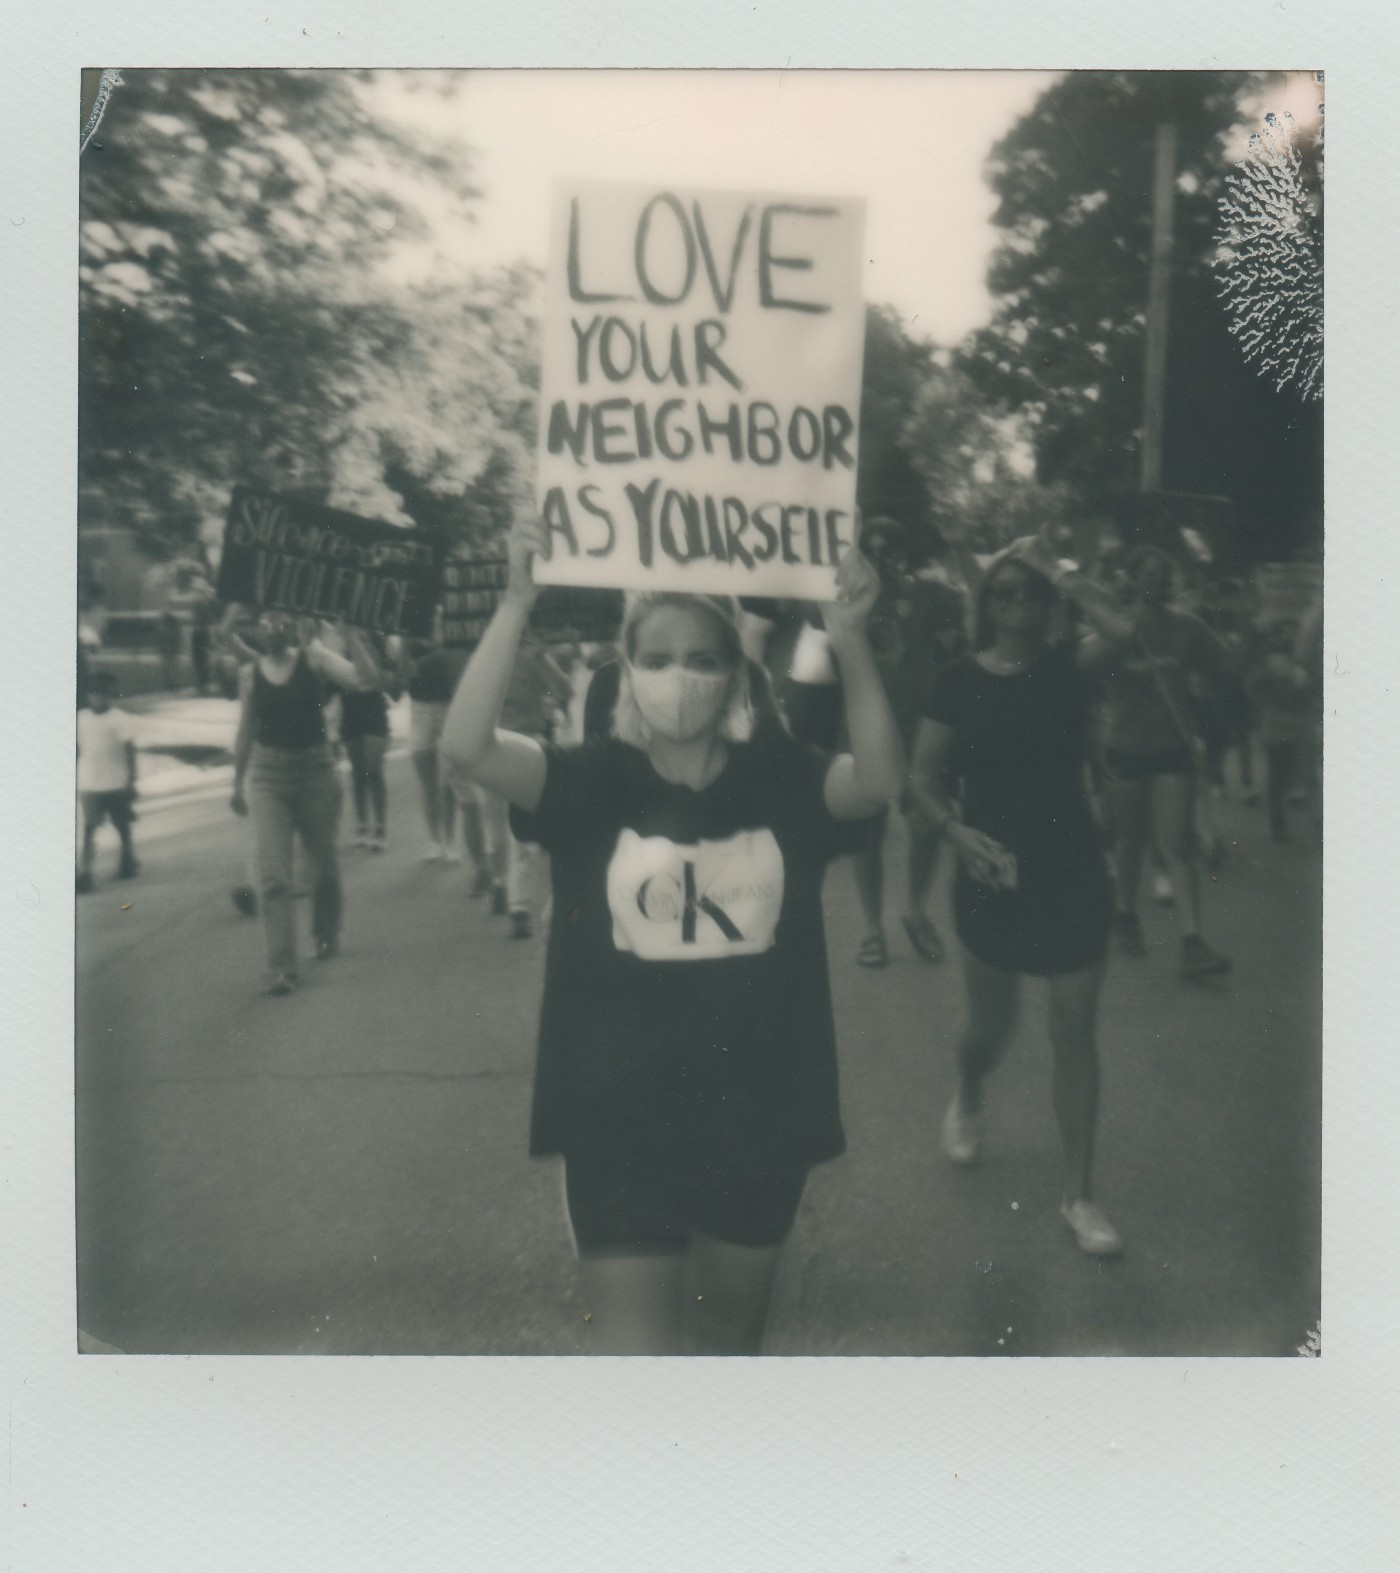 Blurred photo of woman holding up a sign that says love your neighbor as yourself